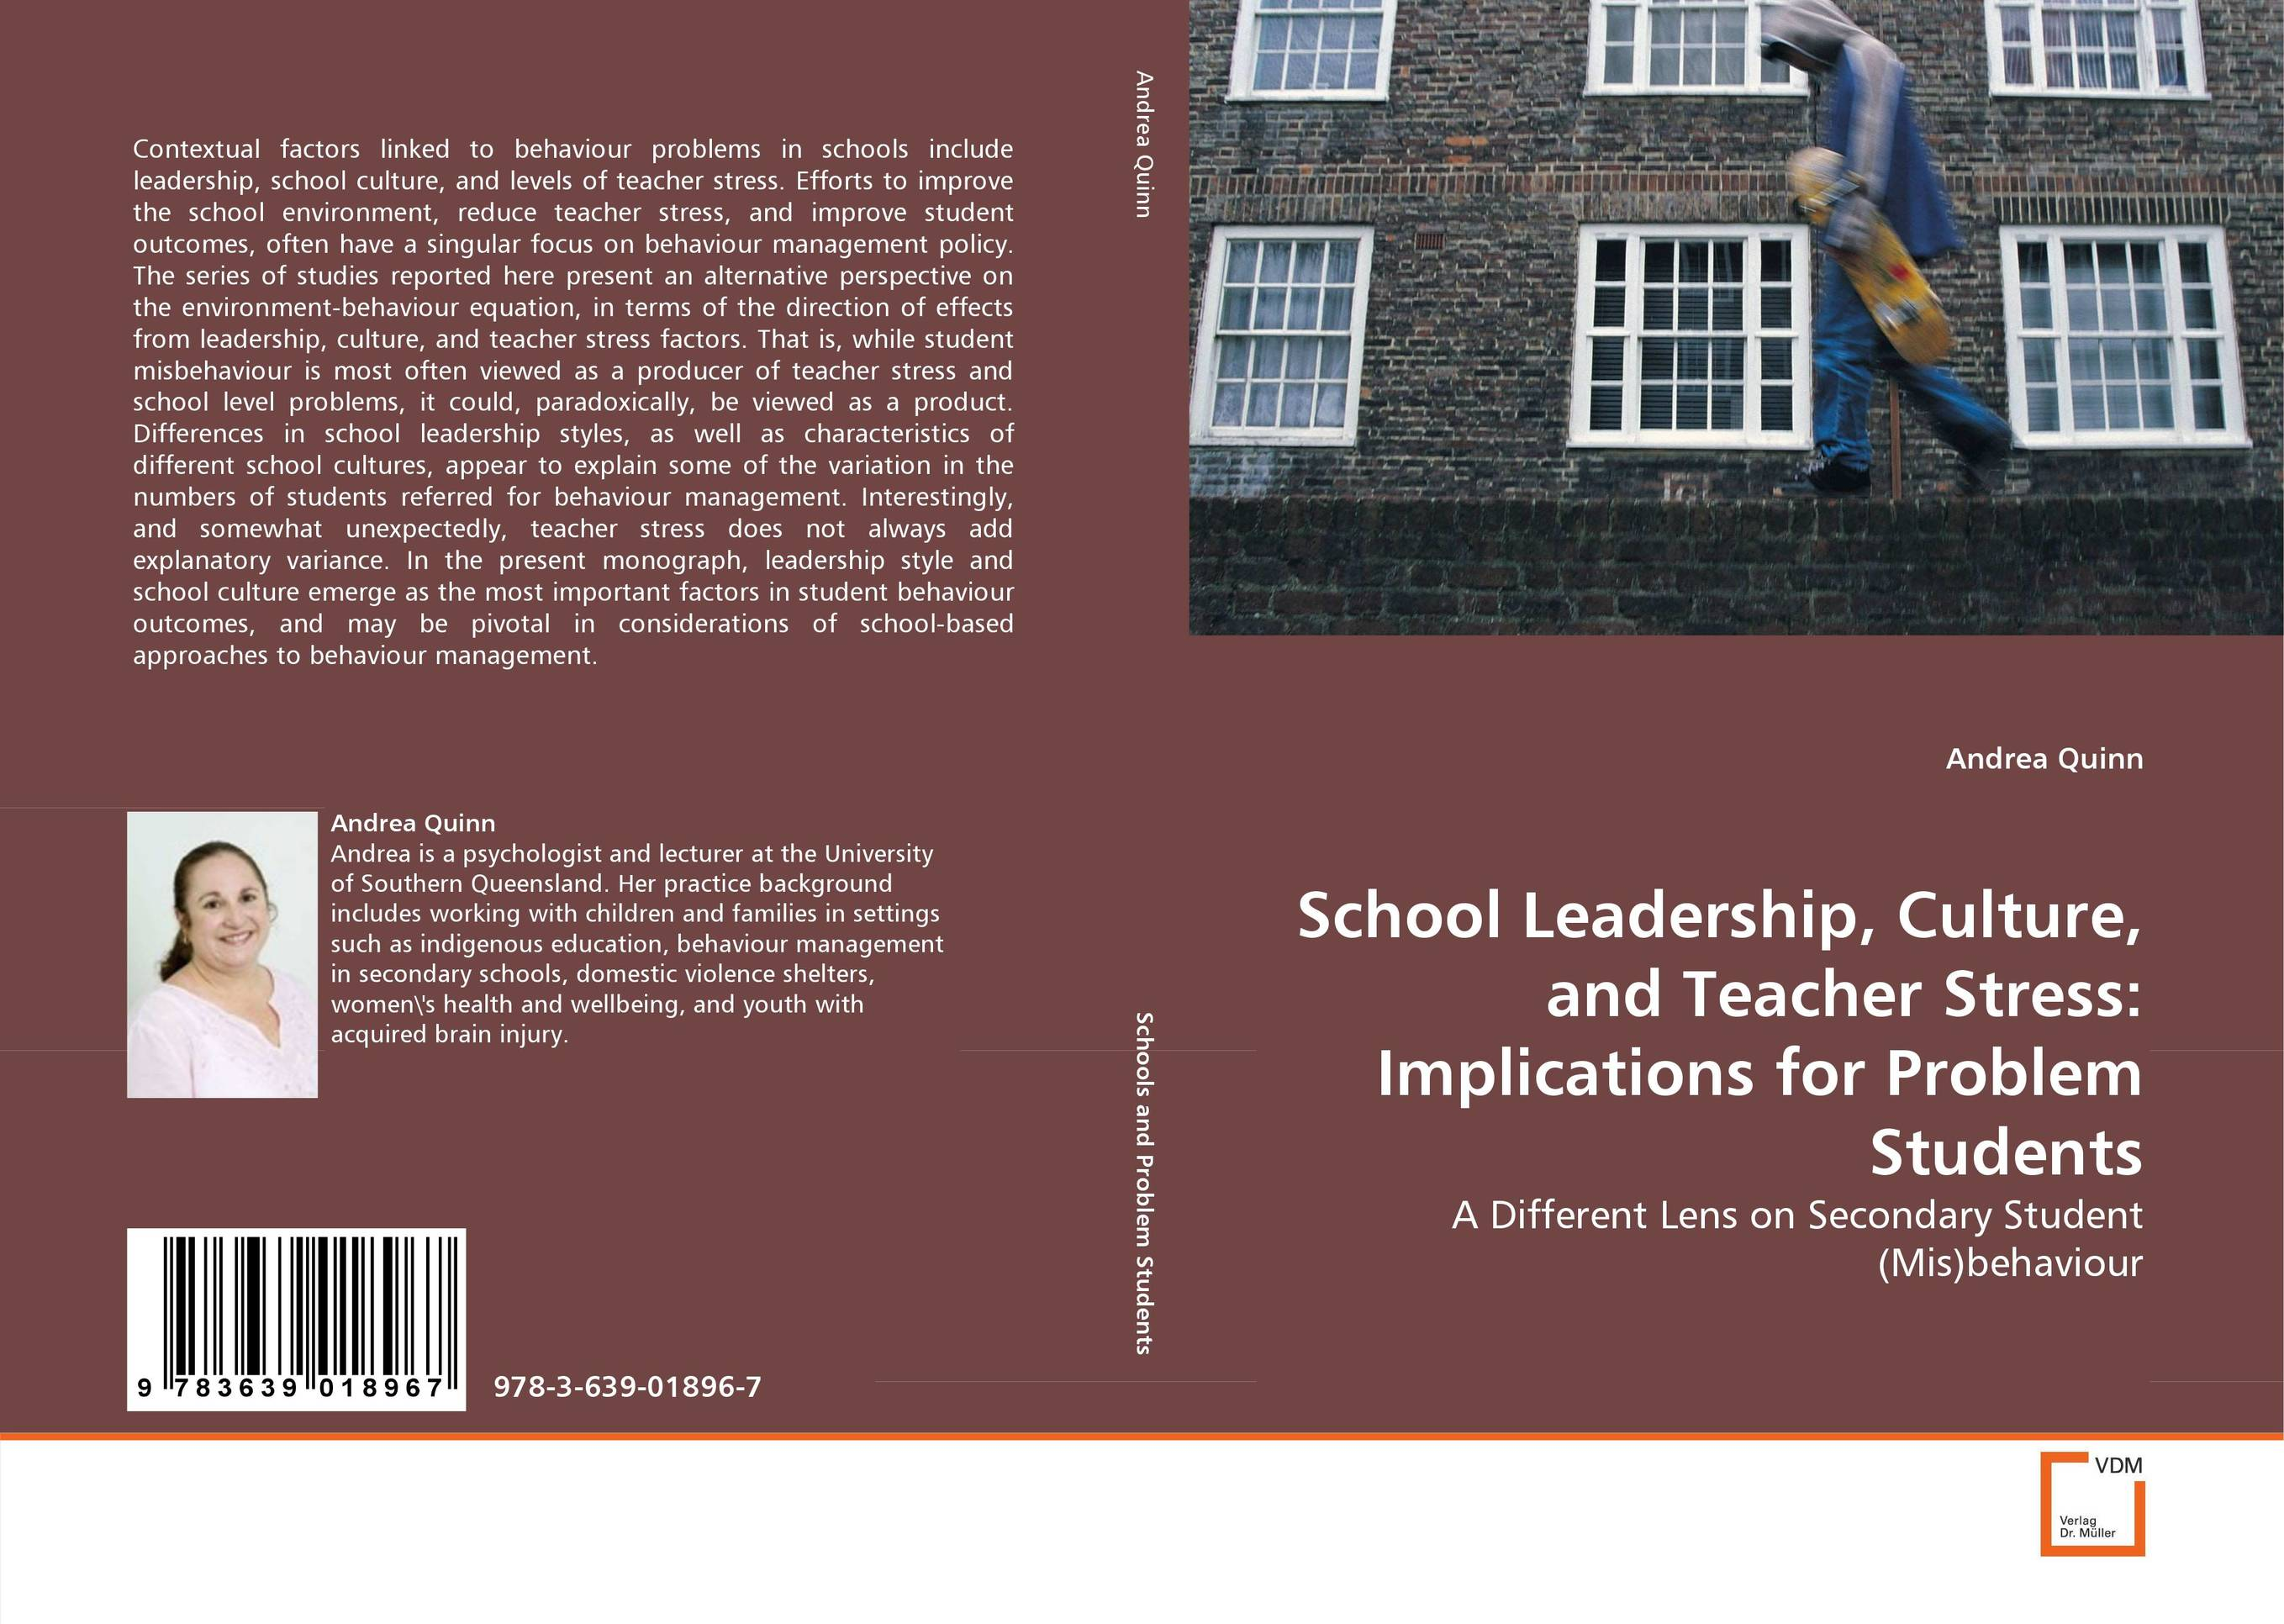 9783639018967 School Leadership, Culture, and Teacher Stress Imblem Students